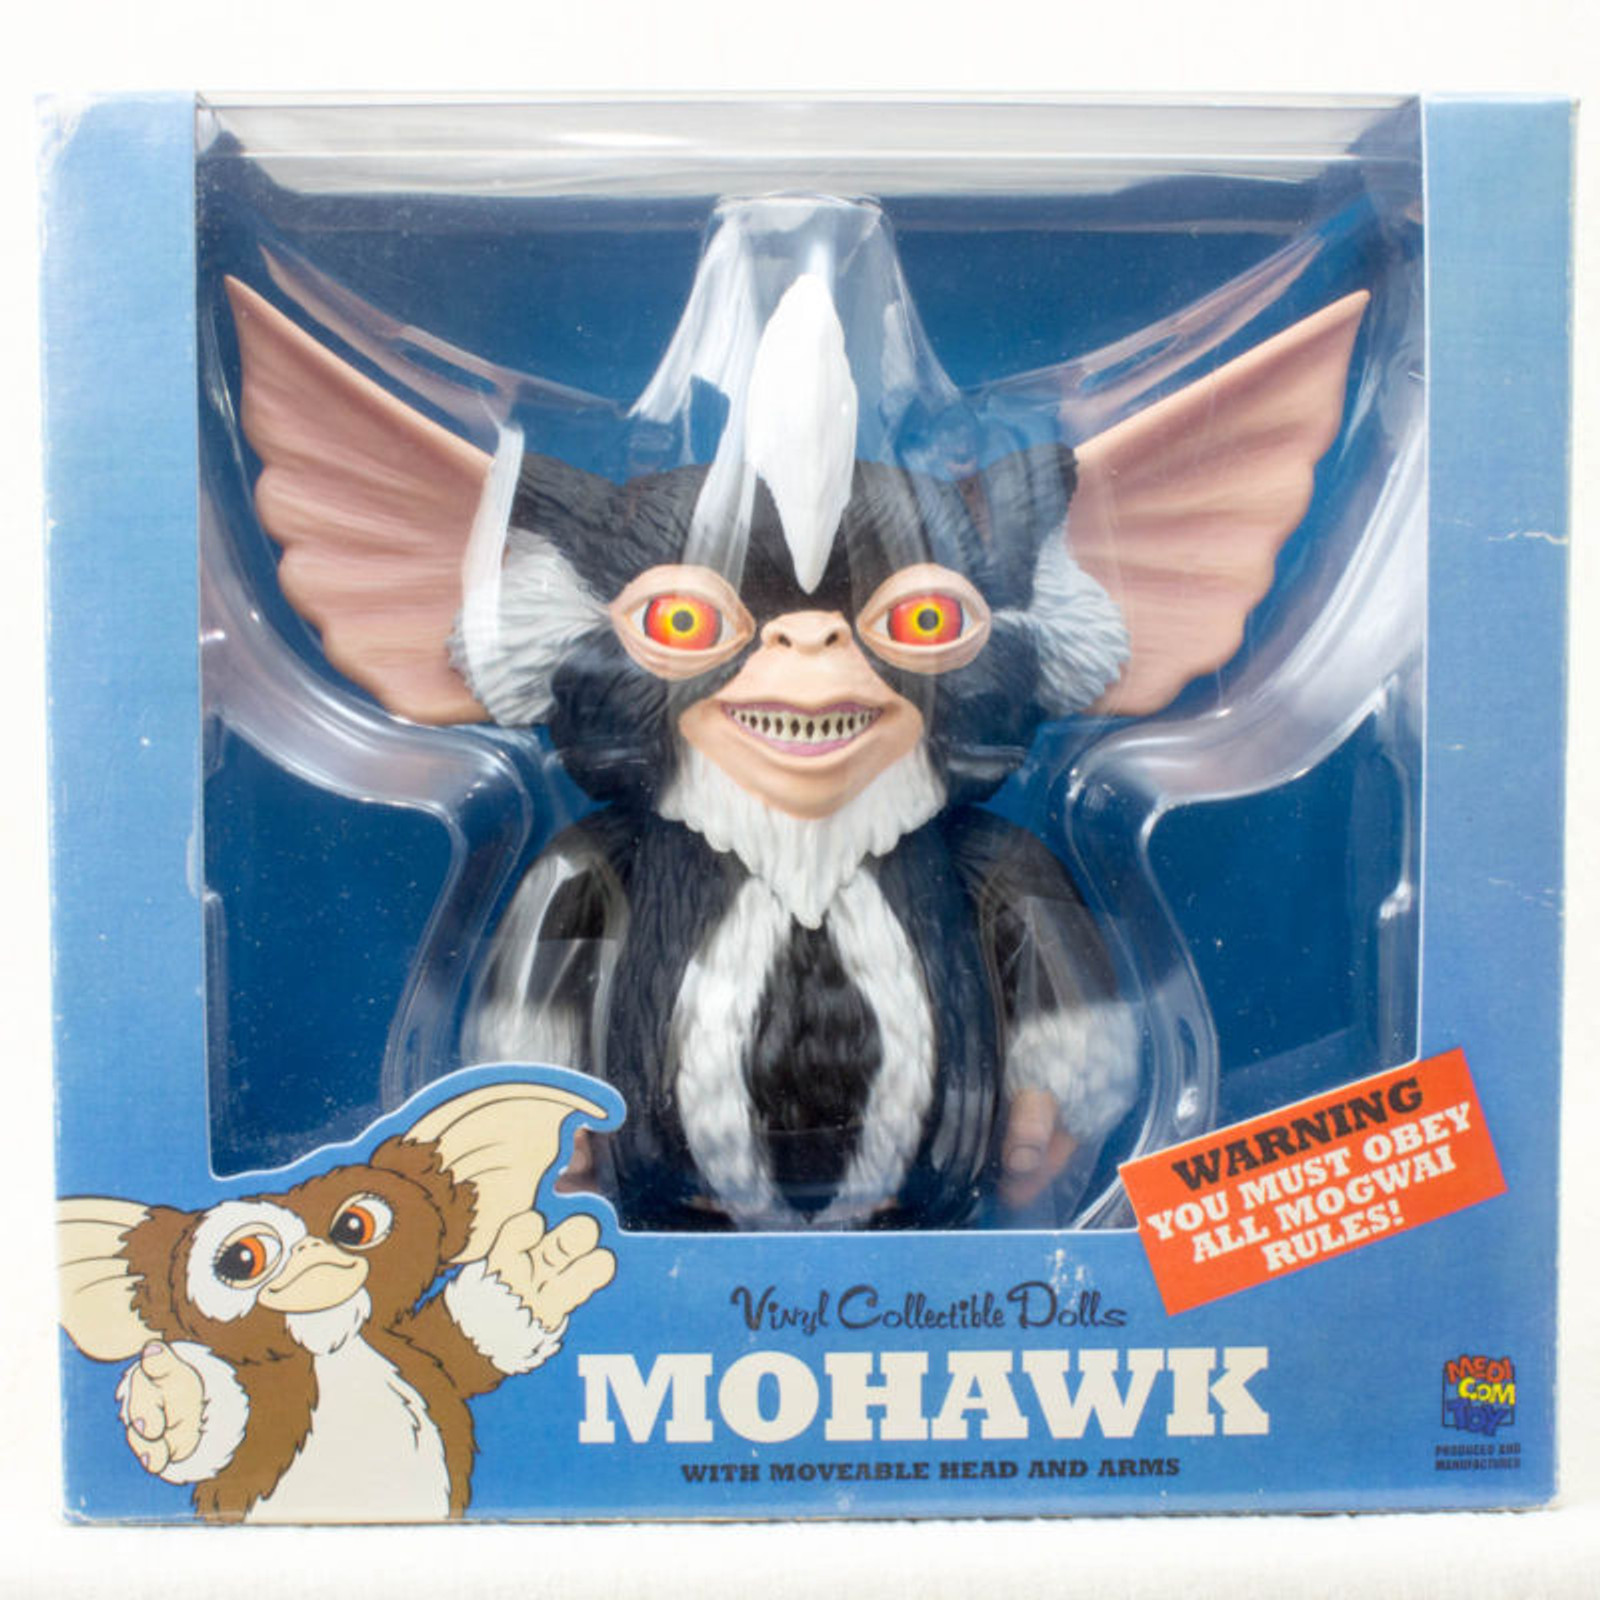 Gremlins Mohawk VCD Vinyl Collectible Dolls Figure Medicom Toy JAPAN MOVIE